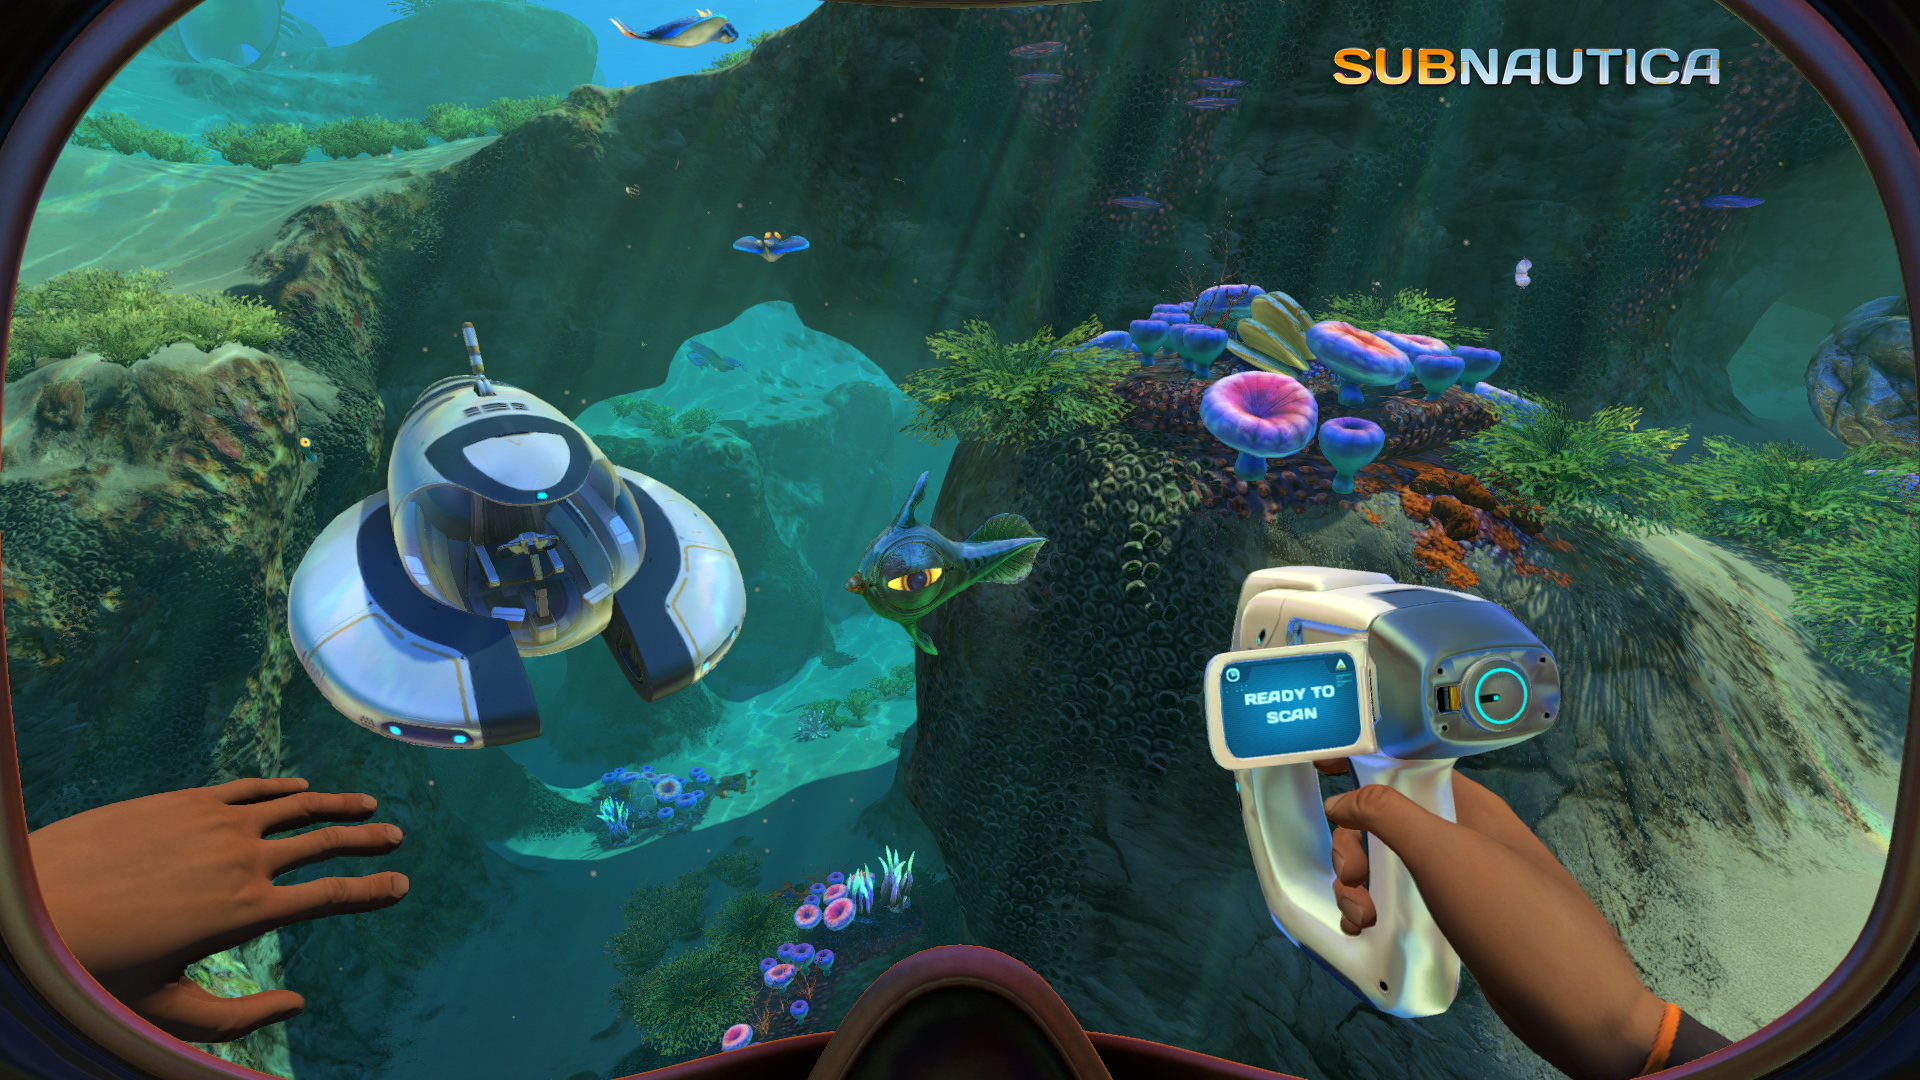 Find the best gaming PC for Subnautica